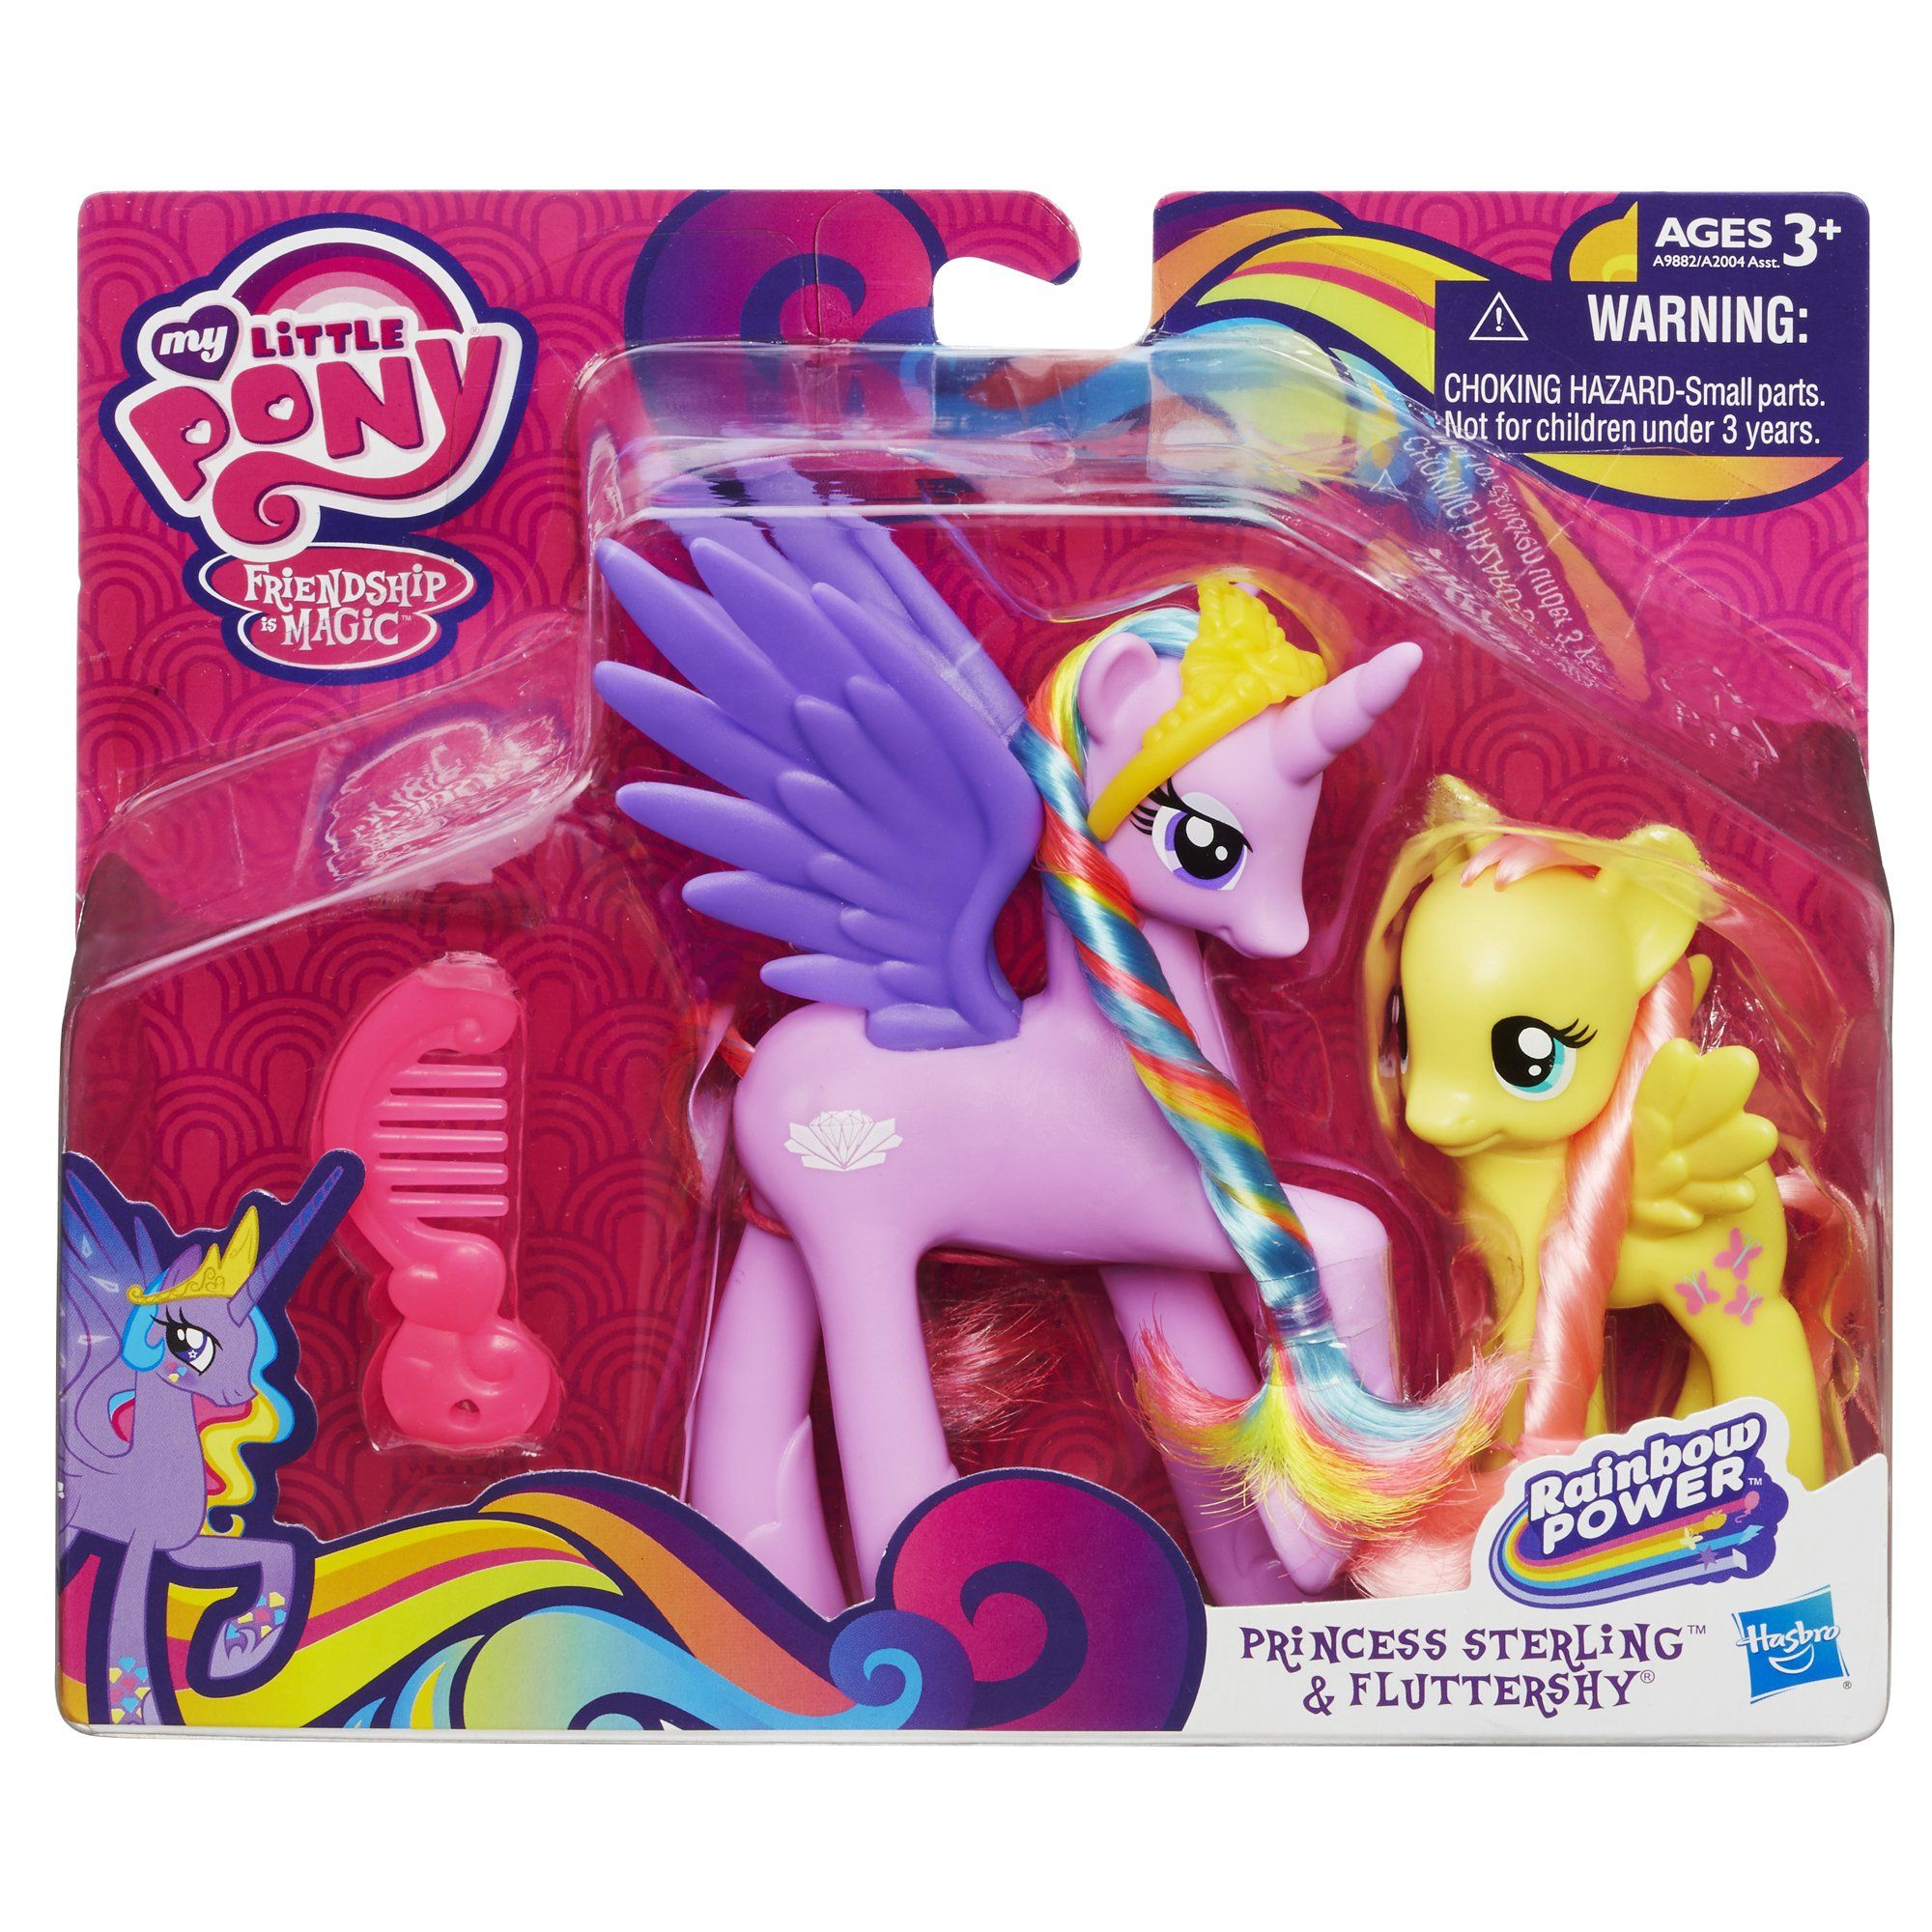 amazon: my little pony princess sterling and fluttershy